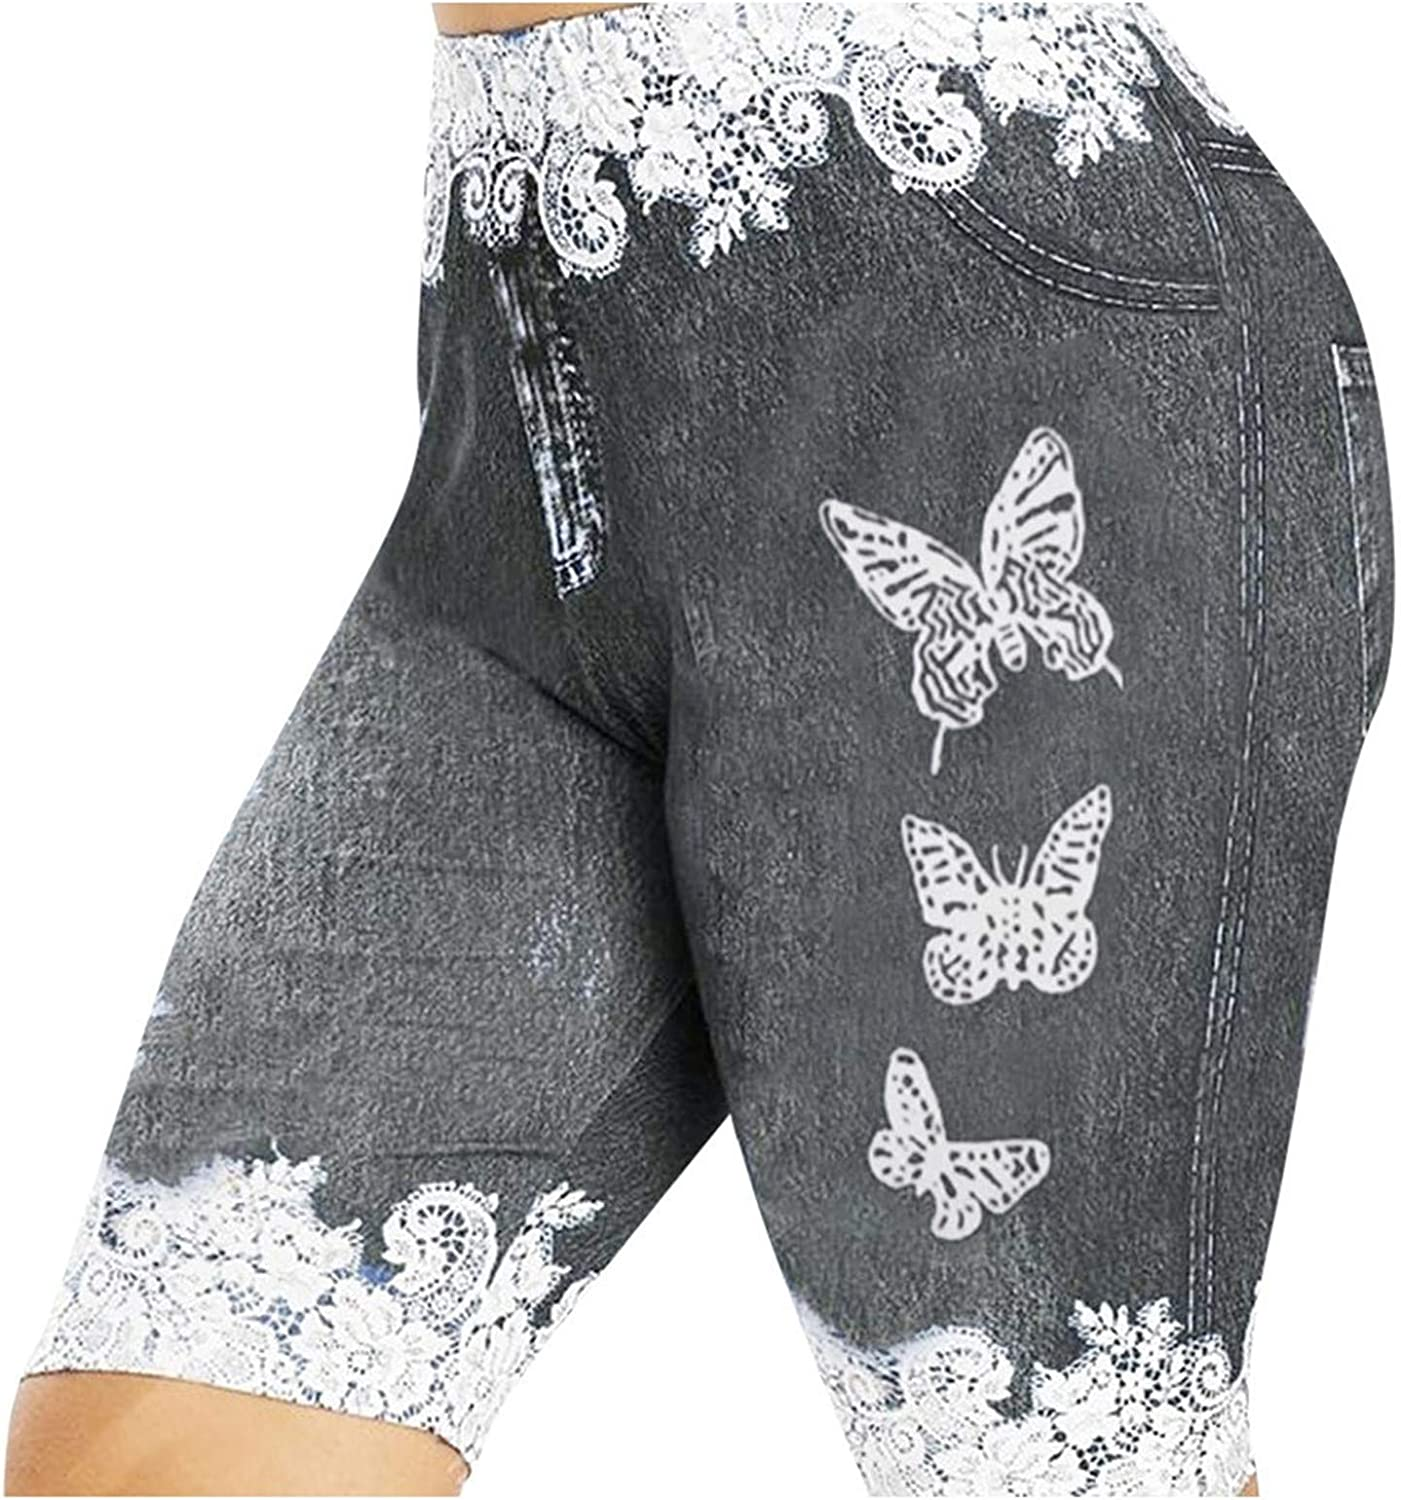 Women's Plus Size Skinny Shorts Butterfly Print Casual Jeggings Faux Denim Jean Shorts Workout Shorts with Pockets